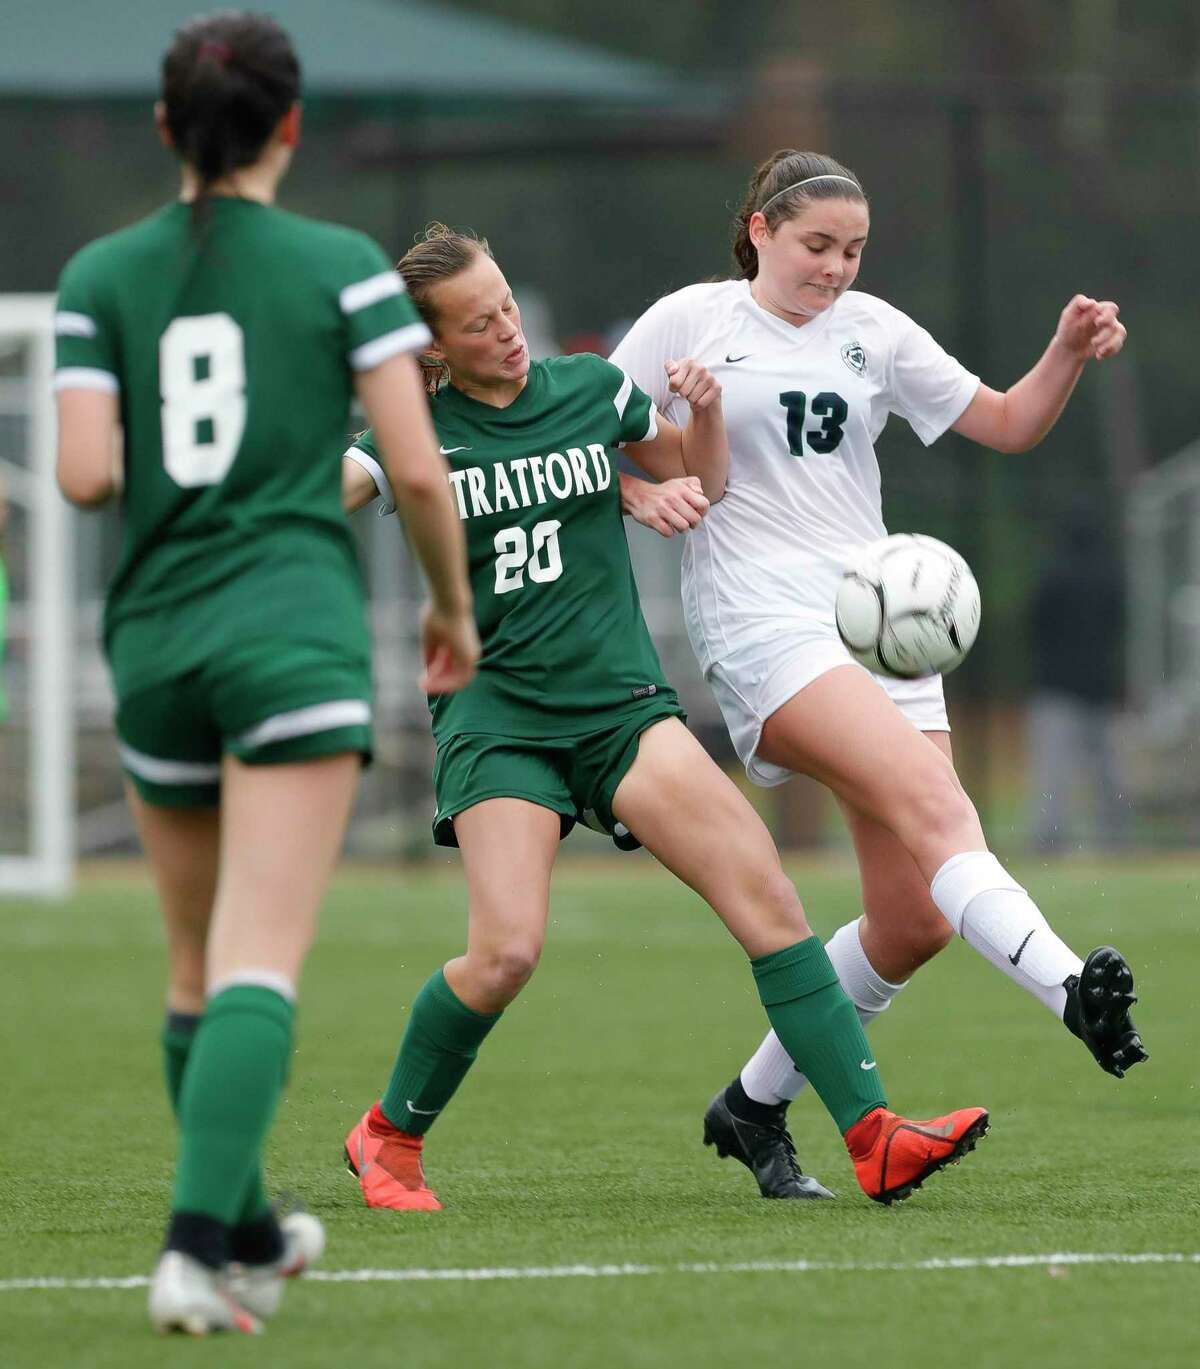 College Park's Kendall Cagney (13) collides with Stratford's Rileigh Toner (20) in the first period of a match during the Lady Highlander Invitational at Gosling Sports Complex, Thursday, Jan. 2, 2020, in The Woodlands.